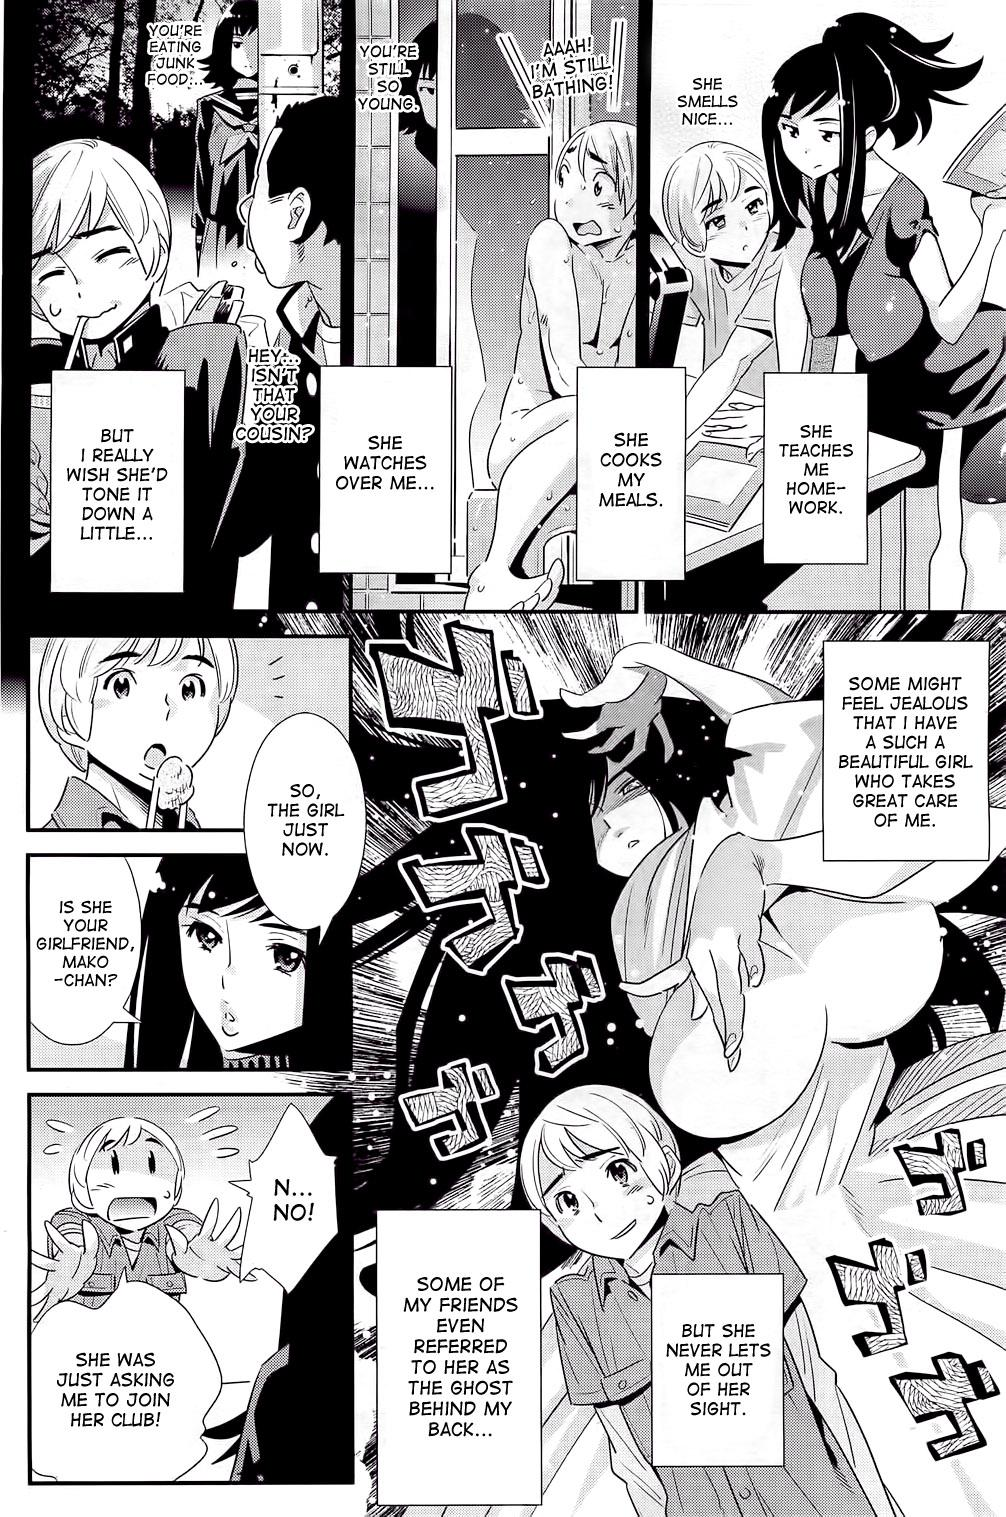 Boku no Haigorei?   The Ghost Behind My Back? Ch. 1-7 3